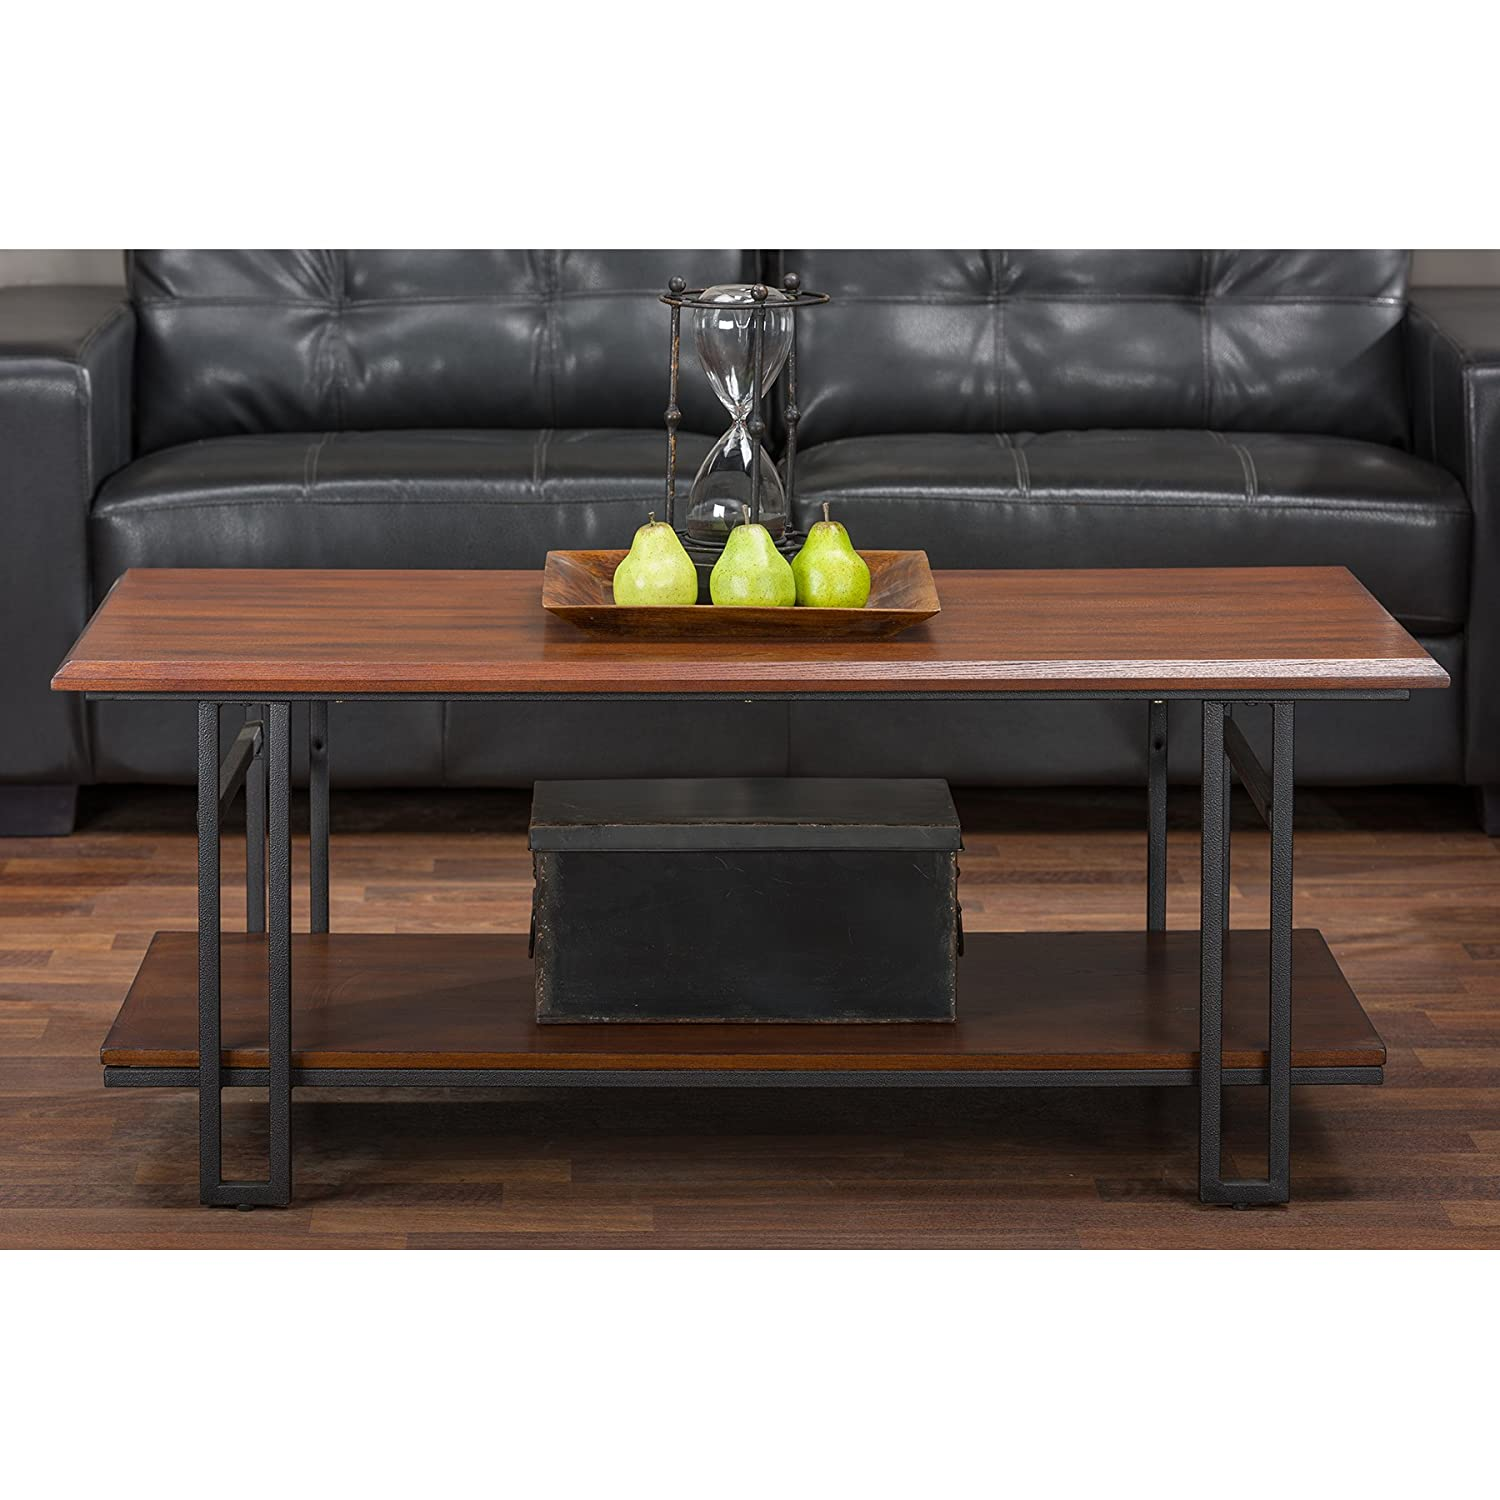 Baxton Studio Newcastle Wood and Metal Coffee Table, Brown YLX-2646-CT